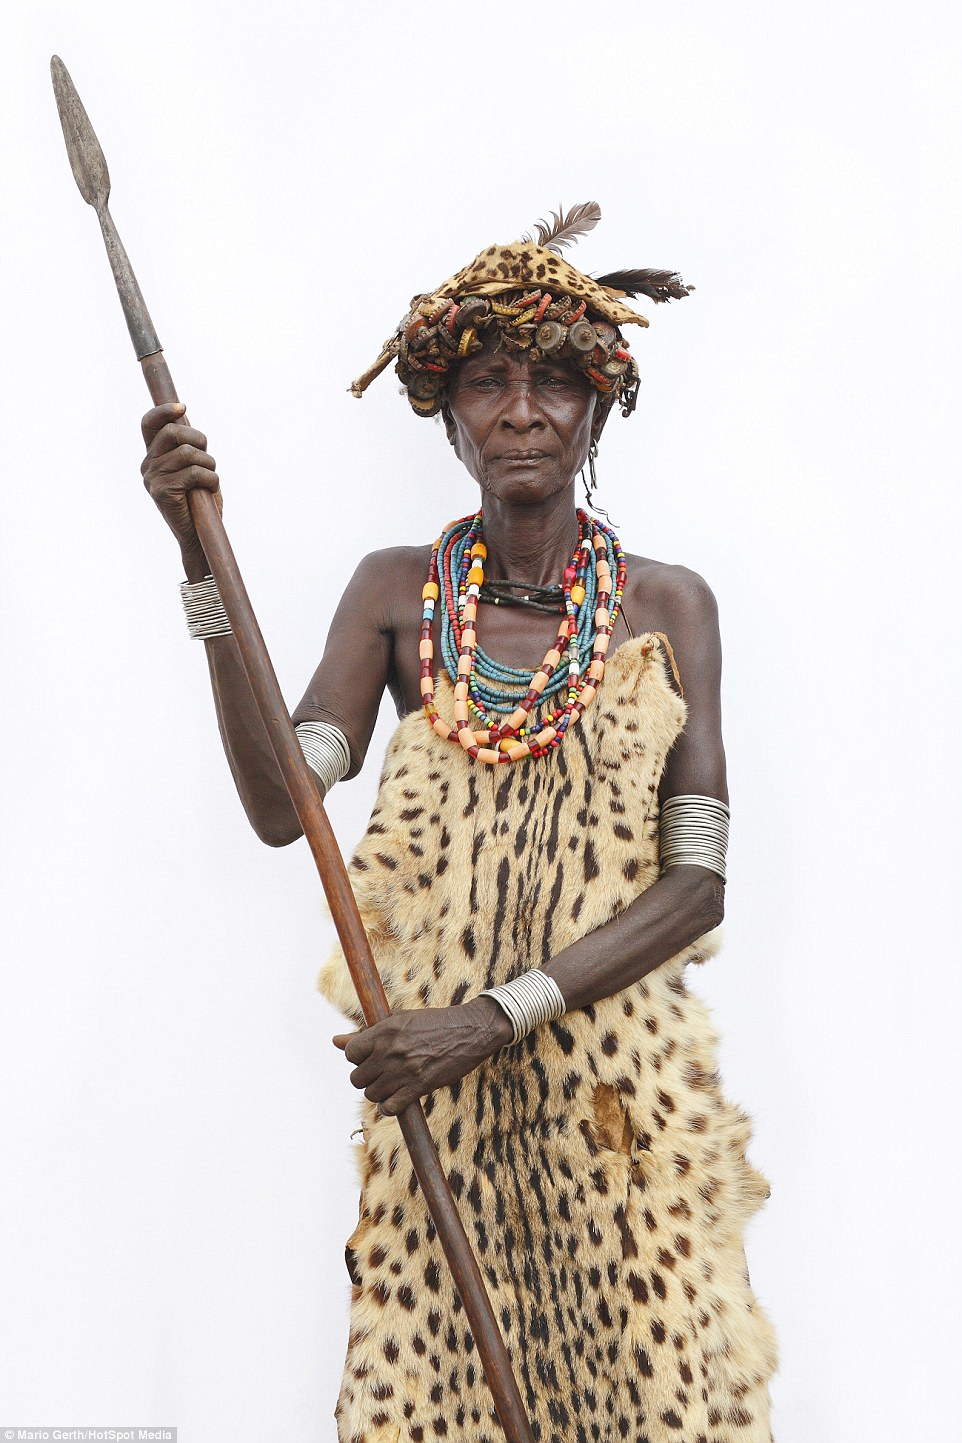 An elderly woman of the Dassanech tribe in Ethiopia brandishes a hunting spear. In many tribal societies older people are revered and given higher social status than the young